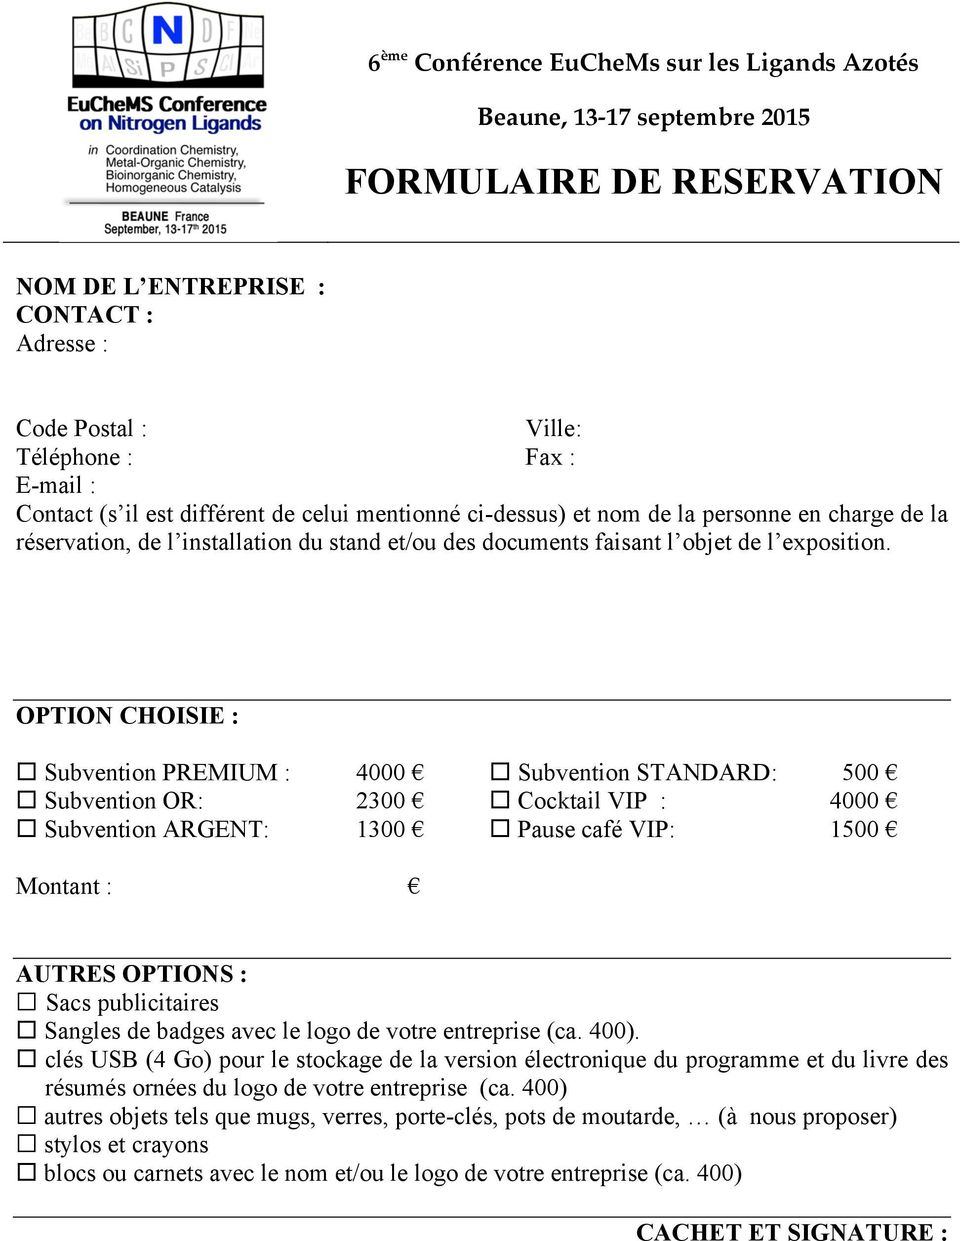 OPTION CHOISIE : Subvention PREMIUM : 4000 Subvention OR: 2300 Subvention ARGENT: 1300 Subvention STANDARD: 500 Cocktail VIP : 4000 Pause café VIP: 1500 Montant : AUTRES OPTIONS : Sacs publicitaires